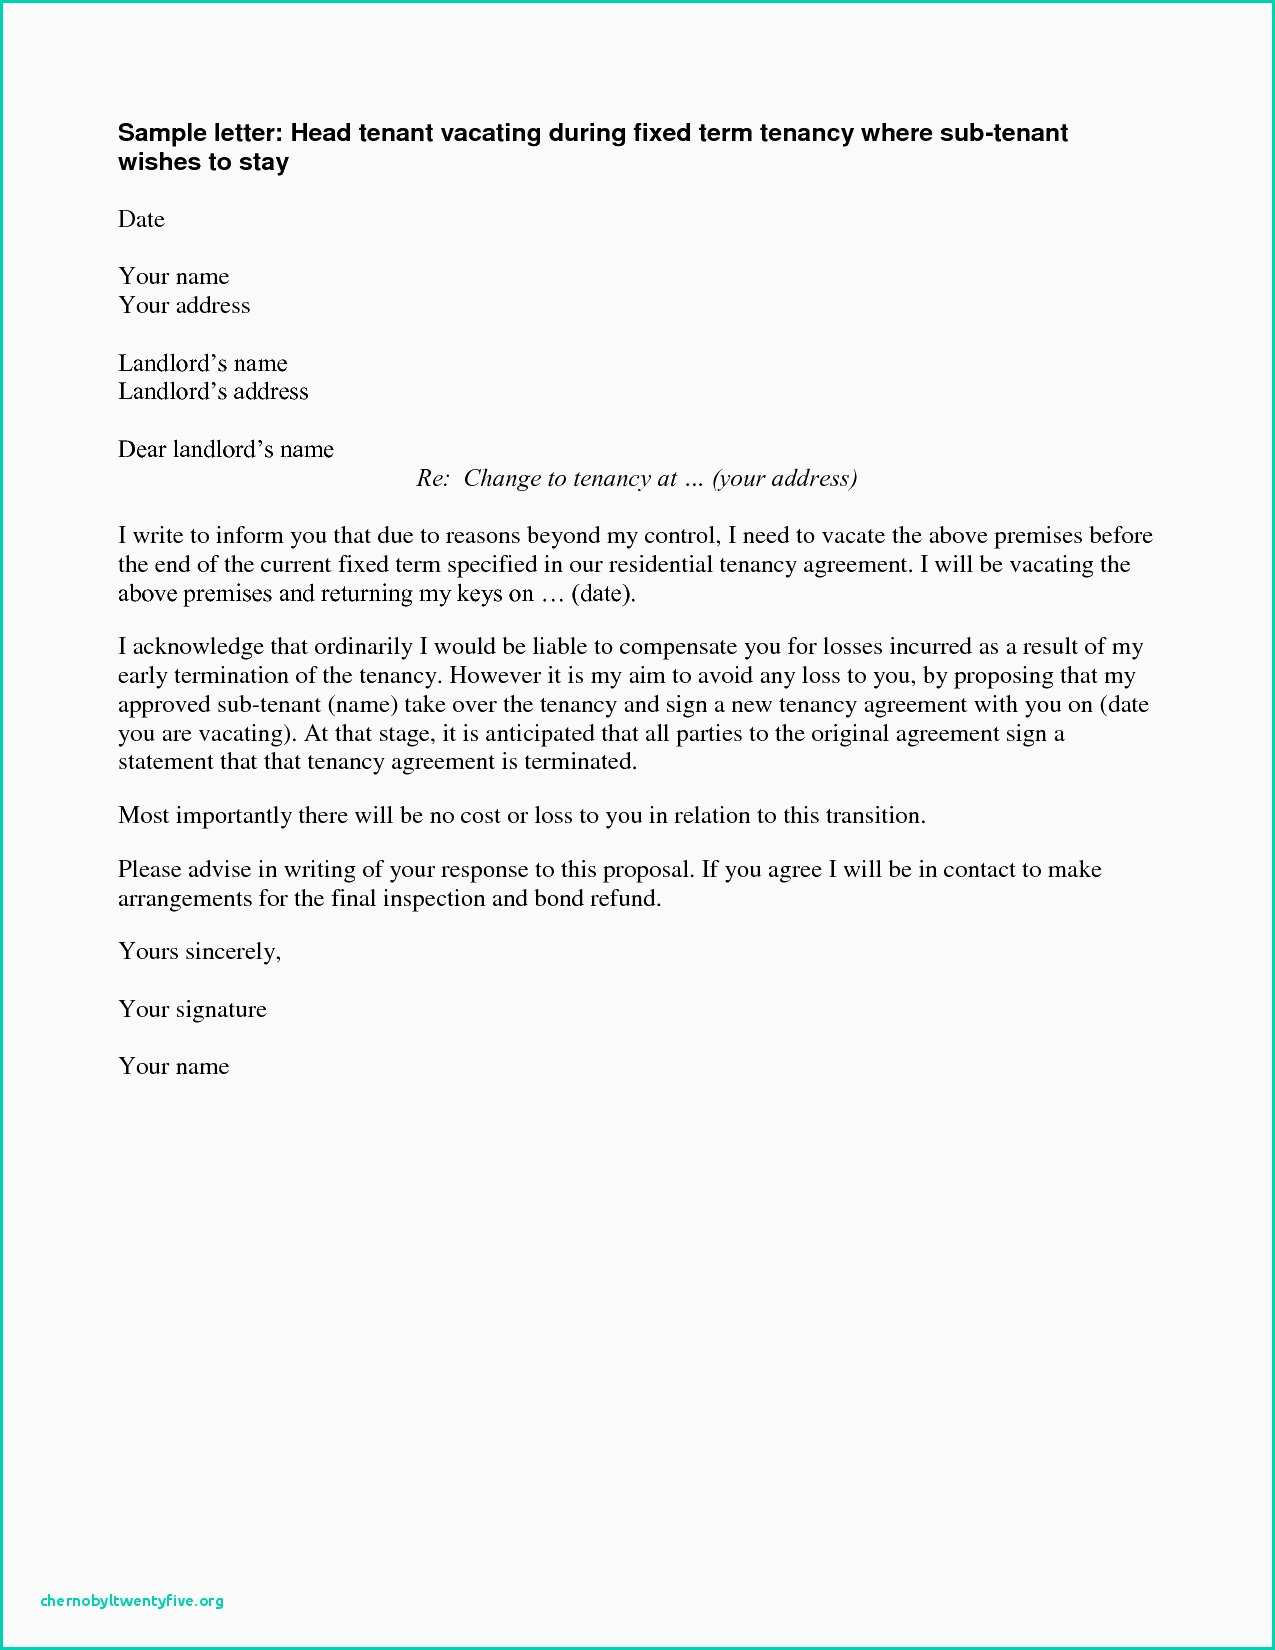 Sample Letter To Break Lease from mthomearts.com